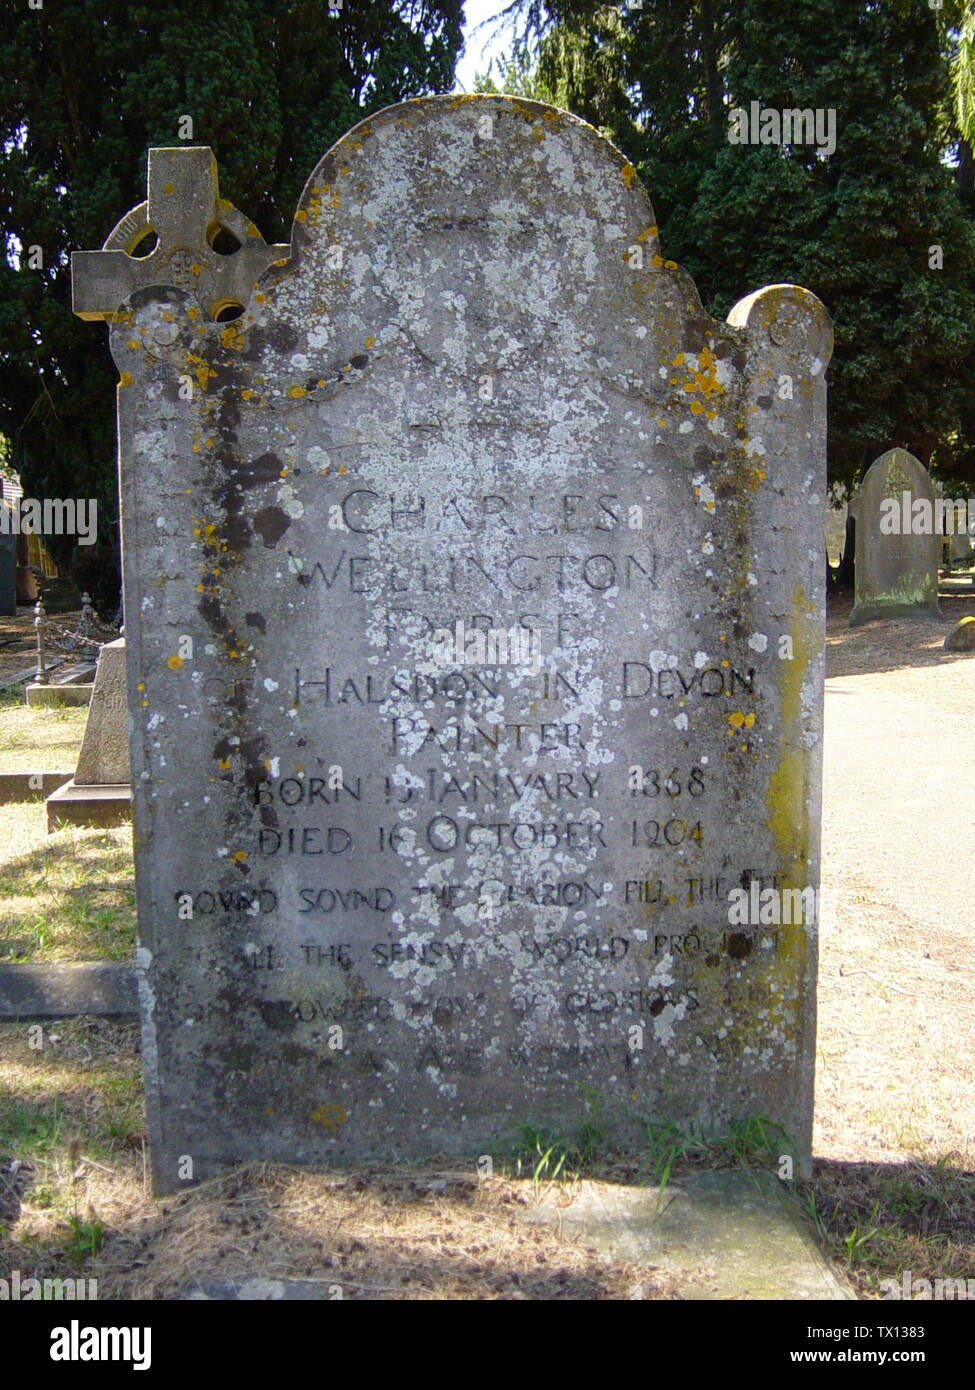 'English: I took this photograph of the gravestone of Charles Wellington Furse (1868-1904) in the churchyard of St Peter's Church, Frimley today. The gravestone bears the full quatrain ending 'one crowded hour of glorious life is worth and age without a name' by Mordaunt written in the European Seven Years' War. The lettering on the gravestone was difficult to read so I have enhanced it slightly using PhotoShop (I simply used a brightness/contrast adjustment layer with a mask which applied the effect only to the lettering - the letters now have higher contrast); 19 July 2006 (original upload d - Stock Image